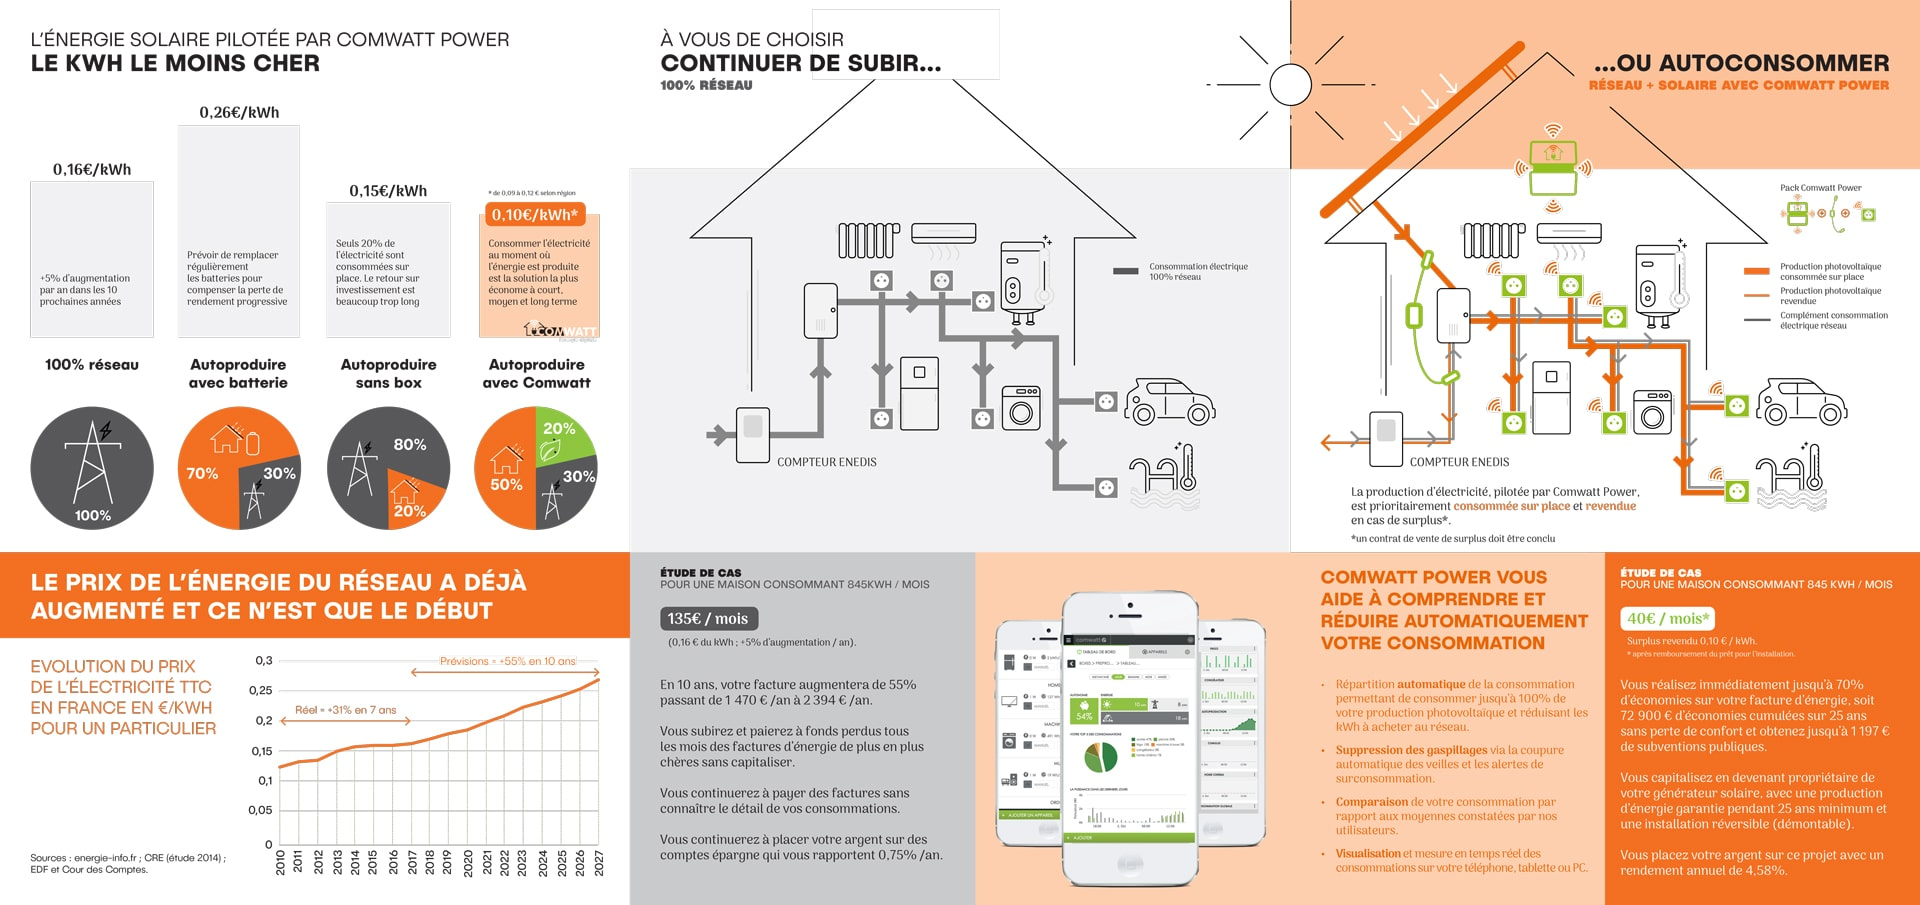 https://capsolr.fr/wp-content/uploads/2019/08/Plaquette-Commerciale-ComWatt-Power-2.jpg